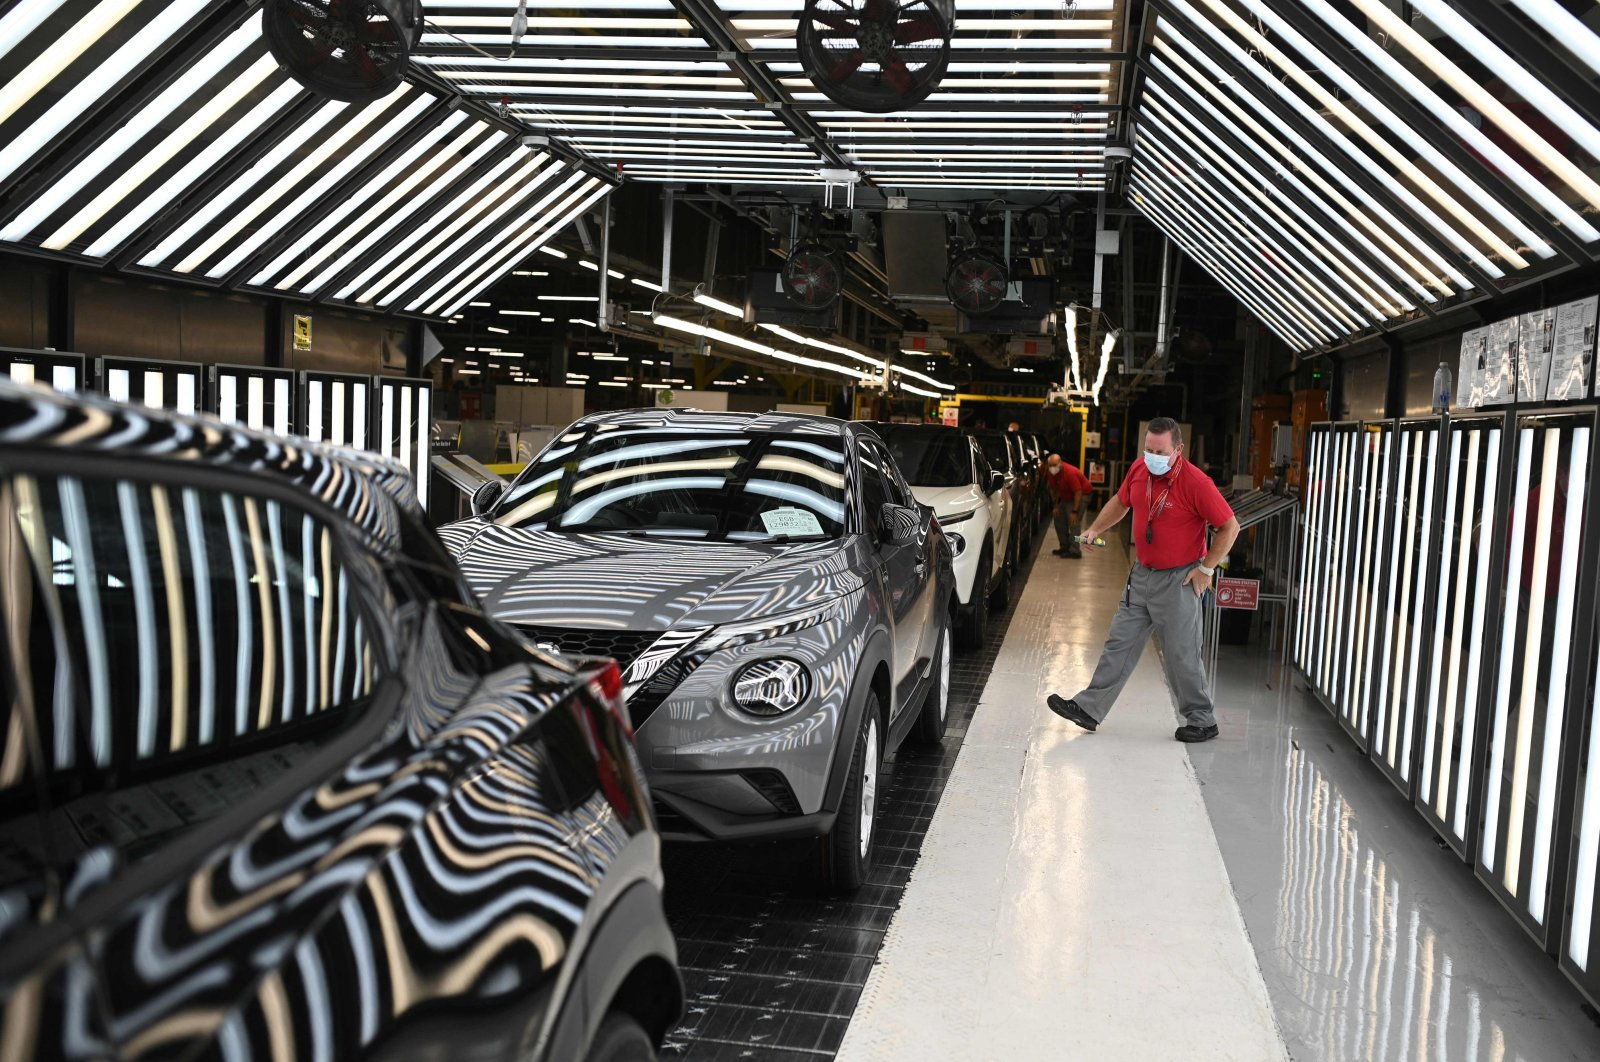 Nissan employees make final checks to cars on the production line at Nissan's plant in Sunderland, northeast England, July 1, 2021. (AFP Photo)